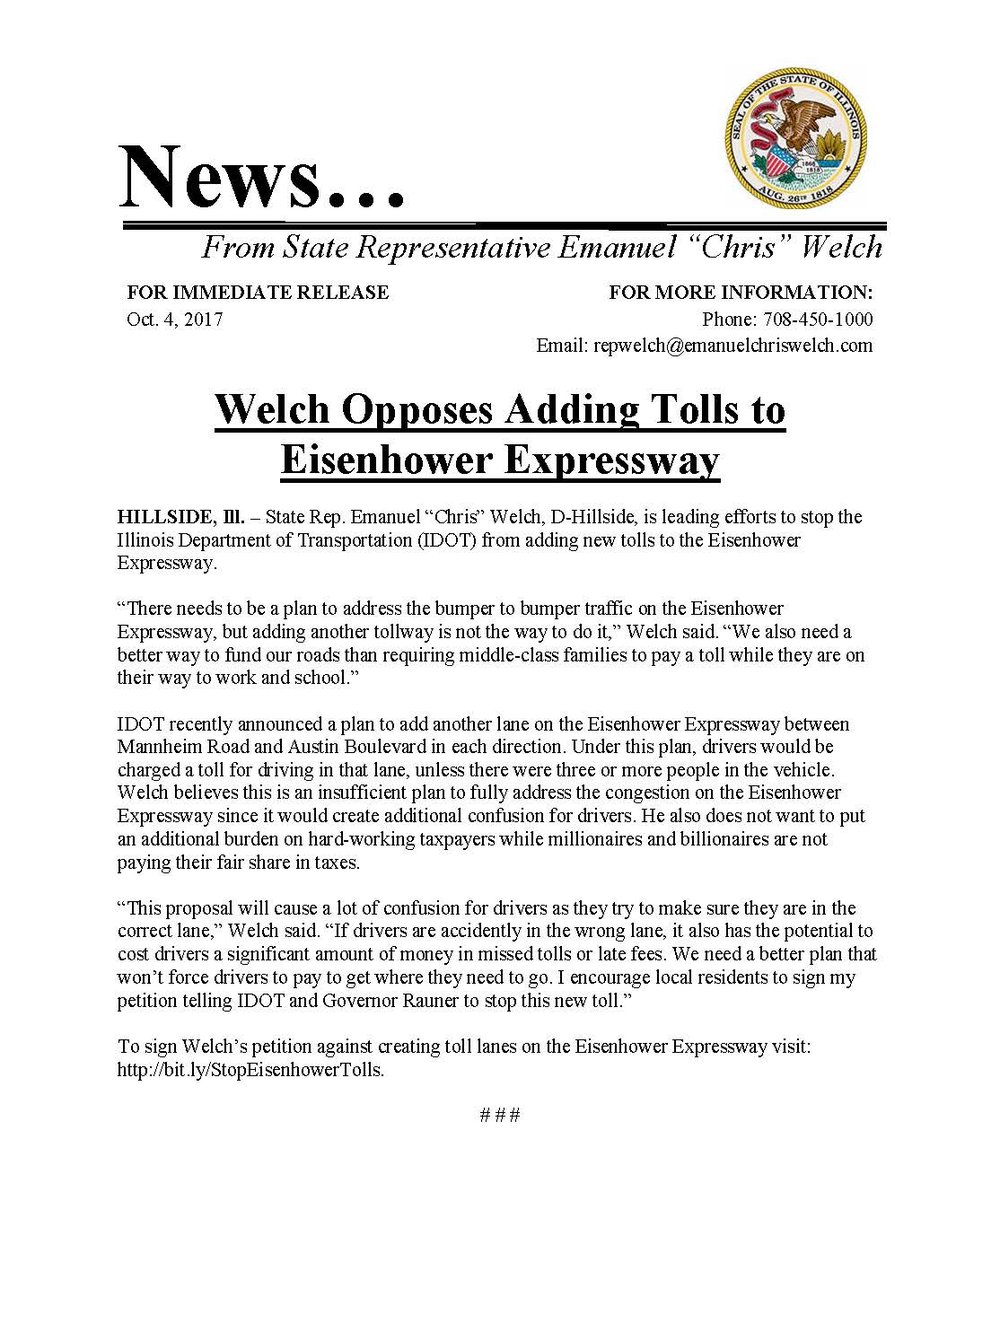 Welch Opposes Adding Tolls to Eisenhower Expressway  (October 4, 2017)